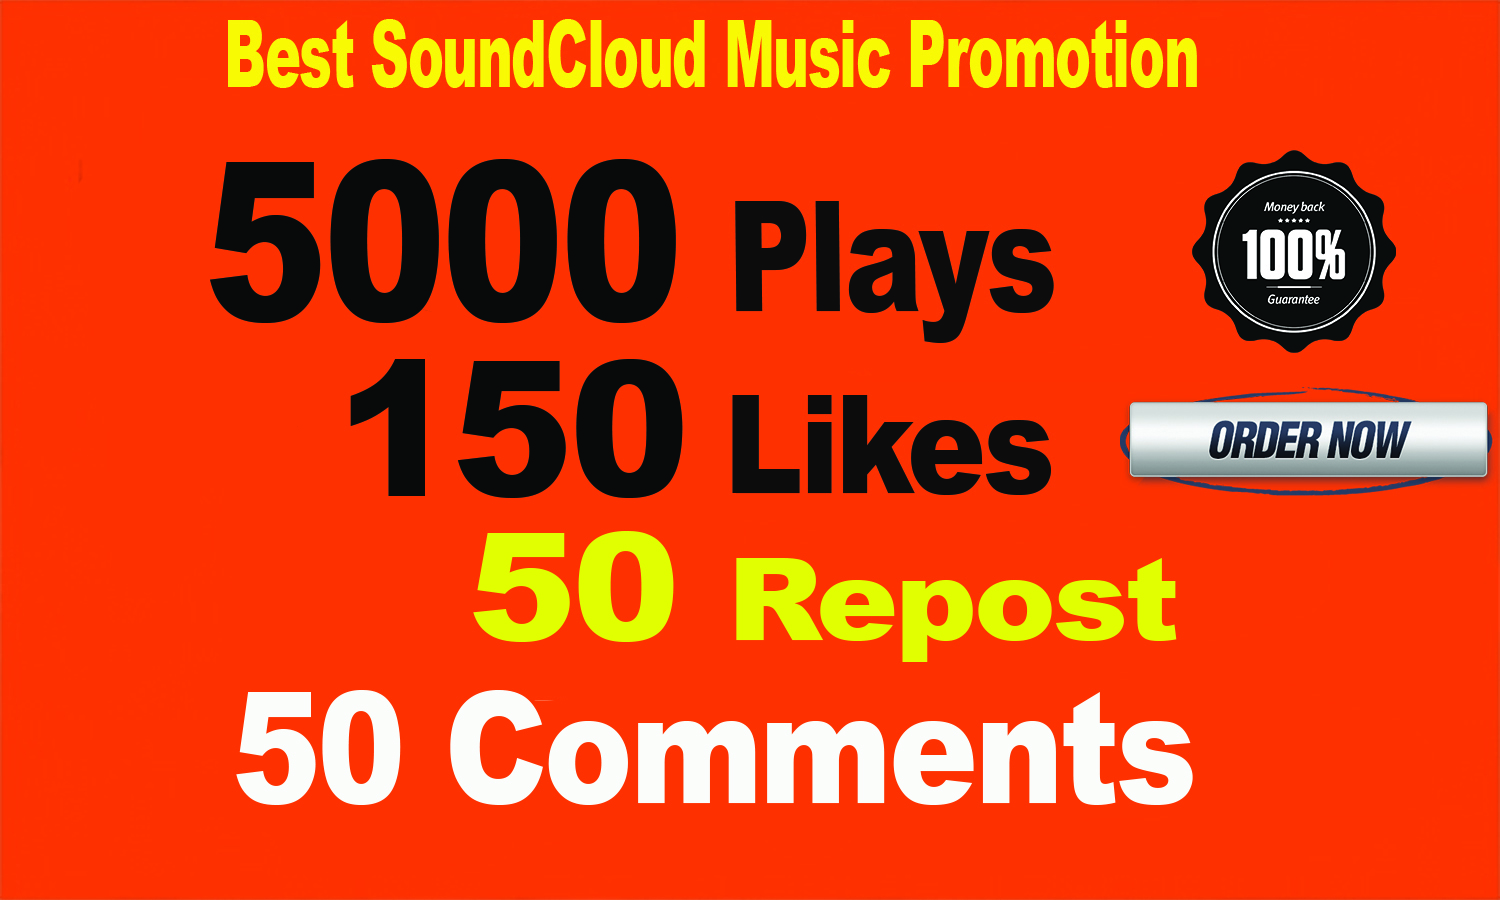 5000 SoundCloud Plays 150 Likes 50 repost 50 comments